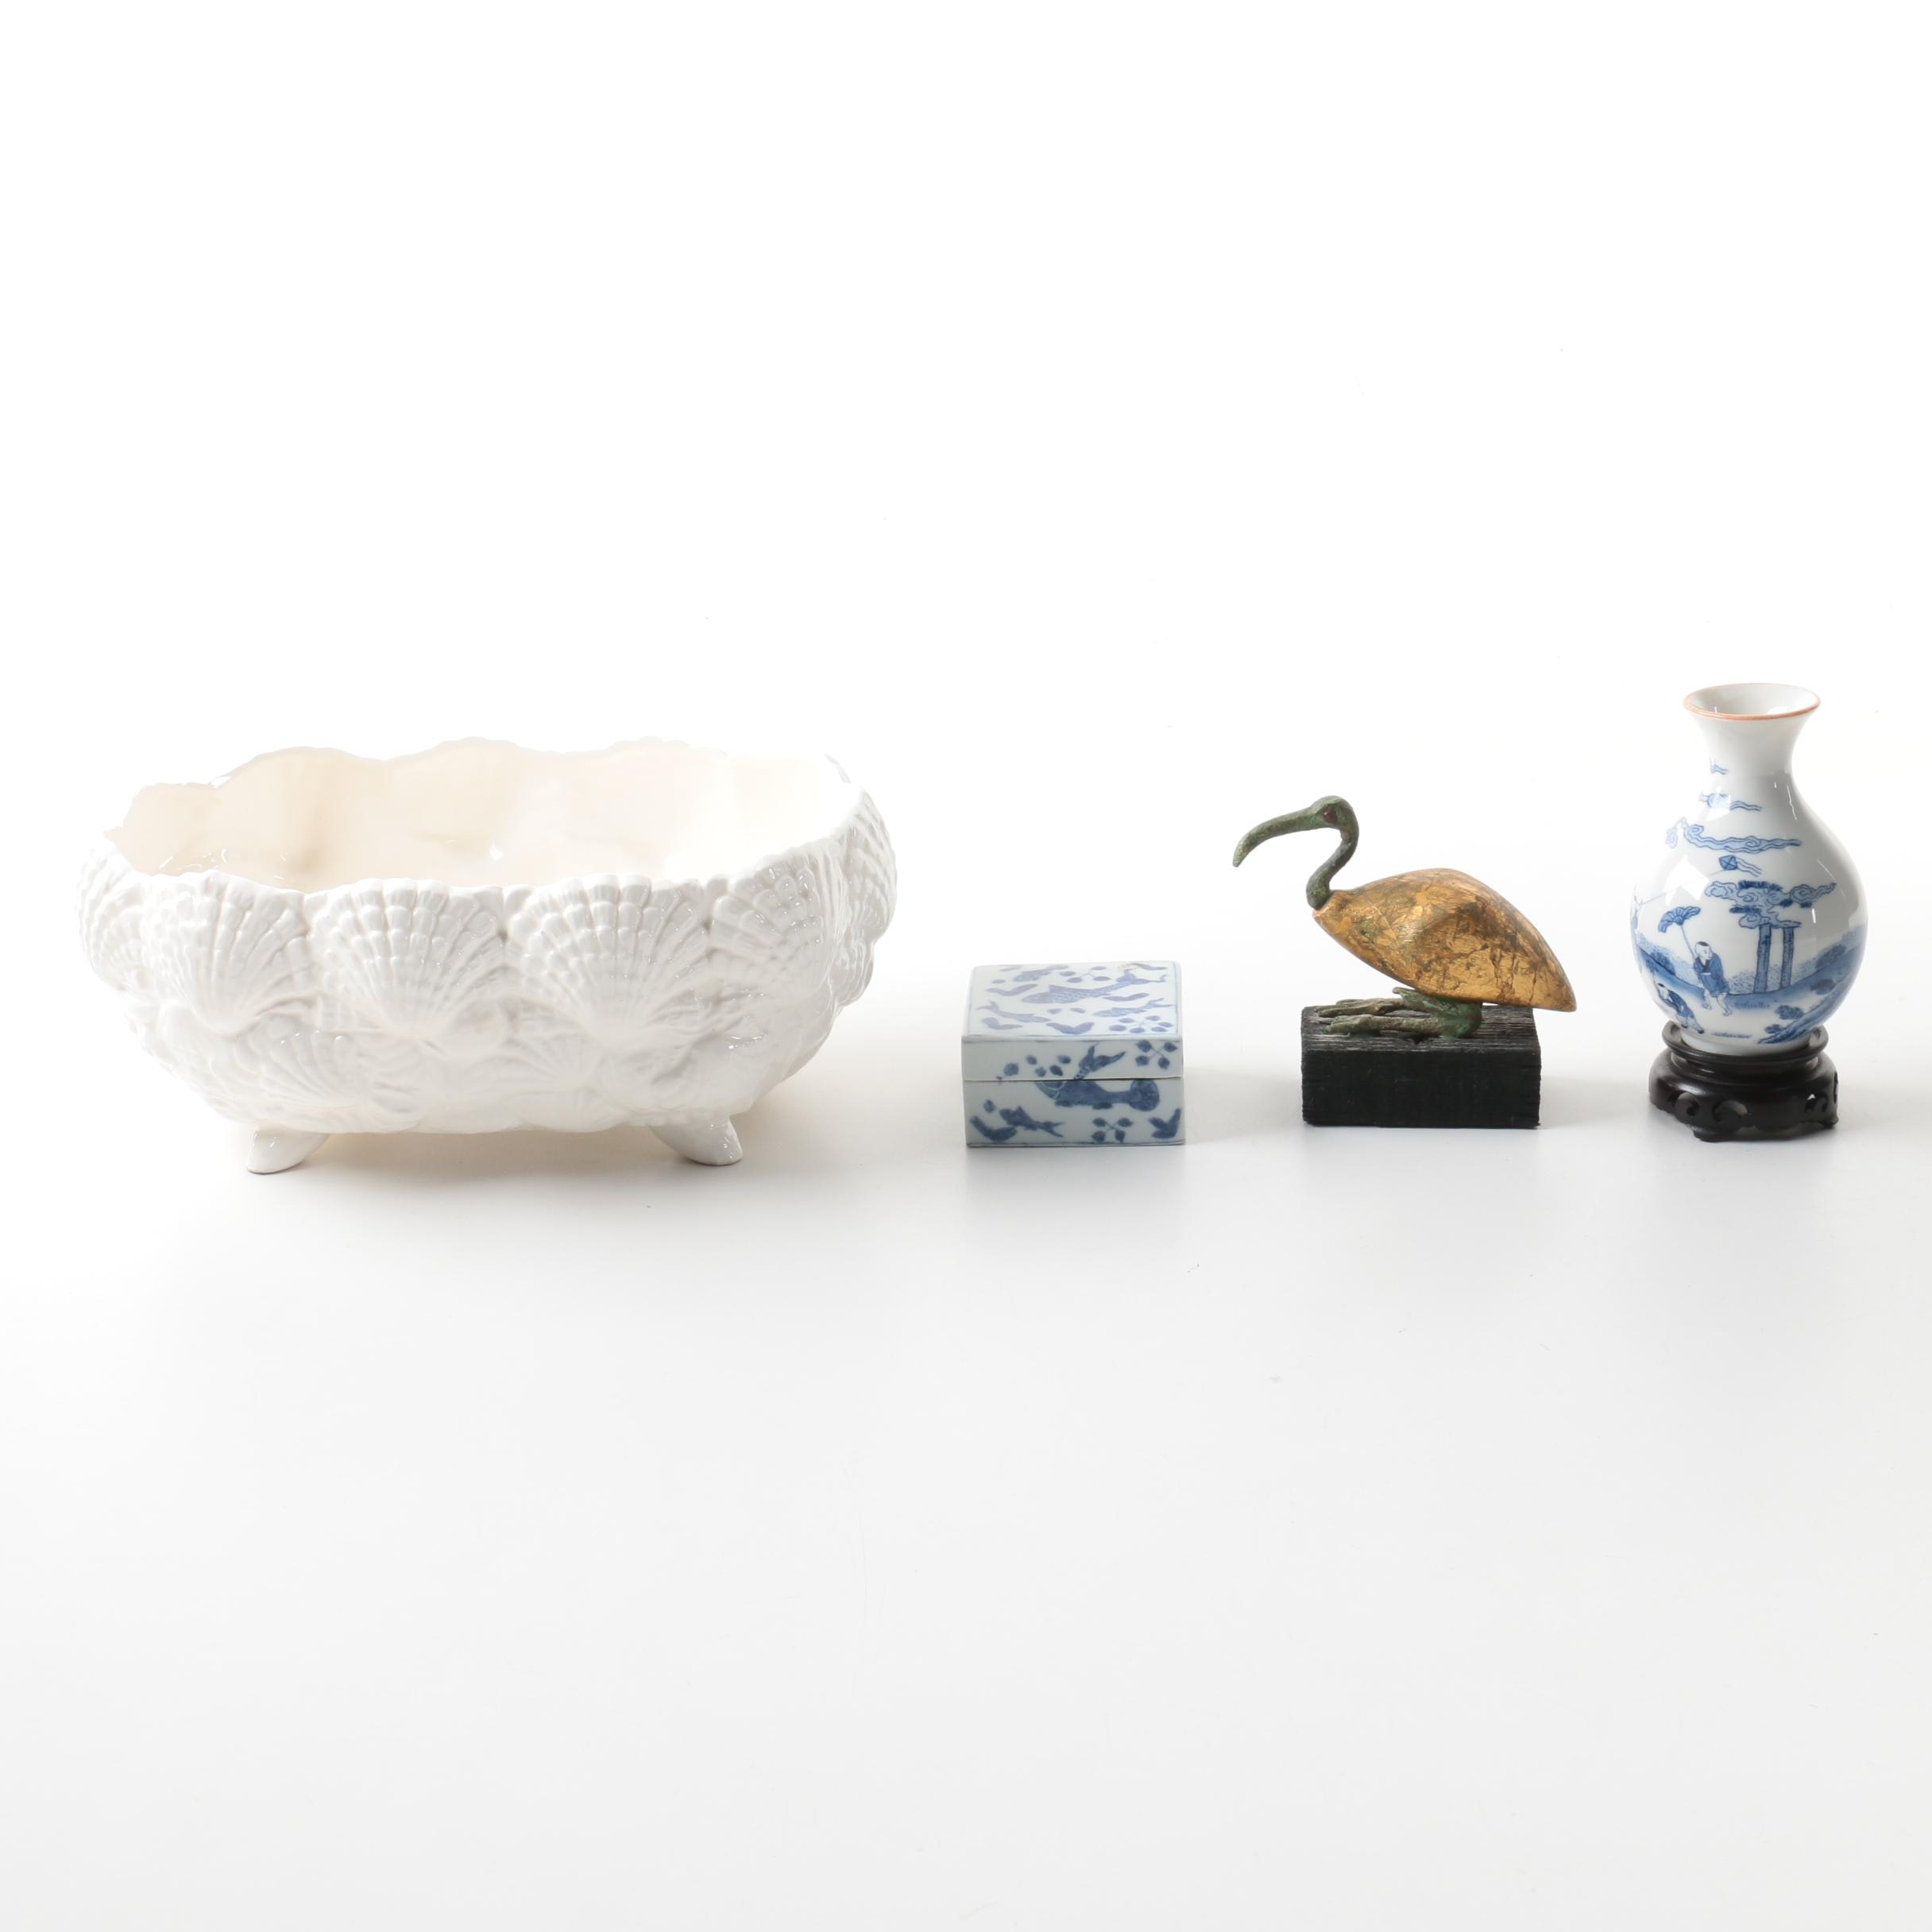 Chinese Blue and White Vase, White Ceramic Shell Dish and Others